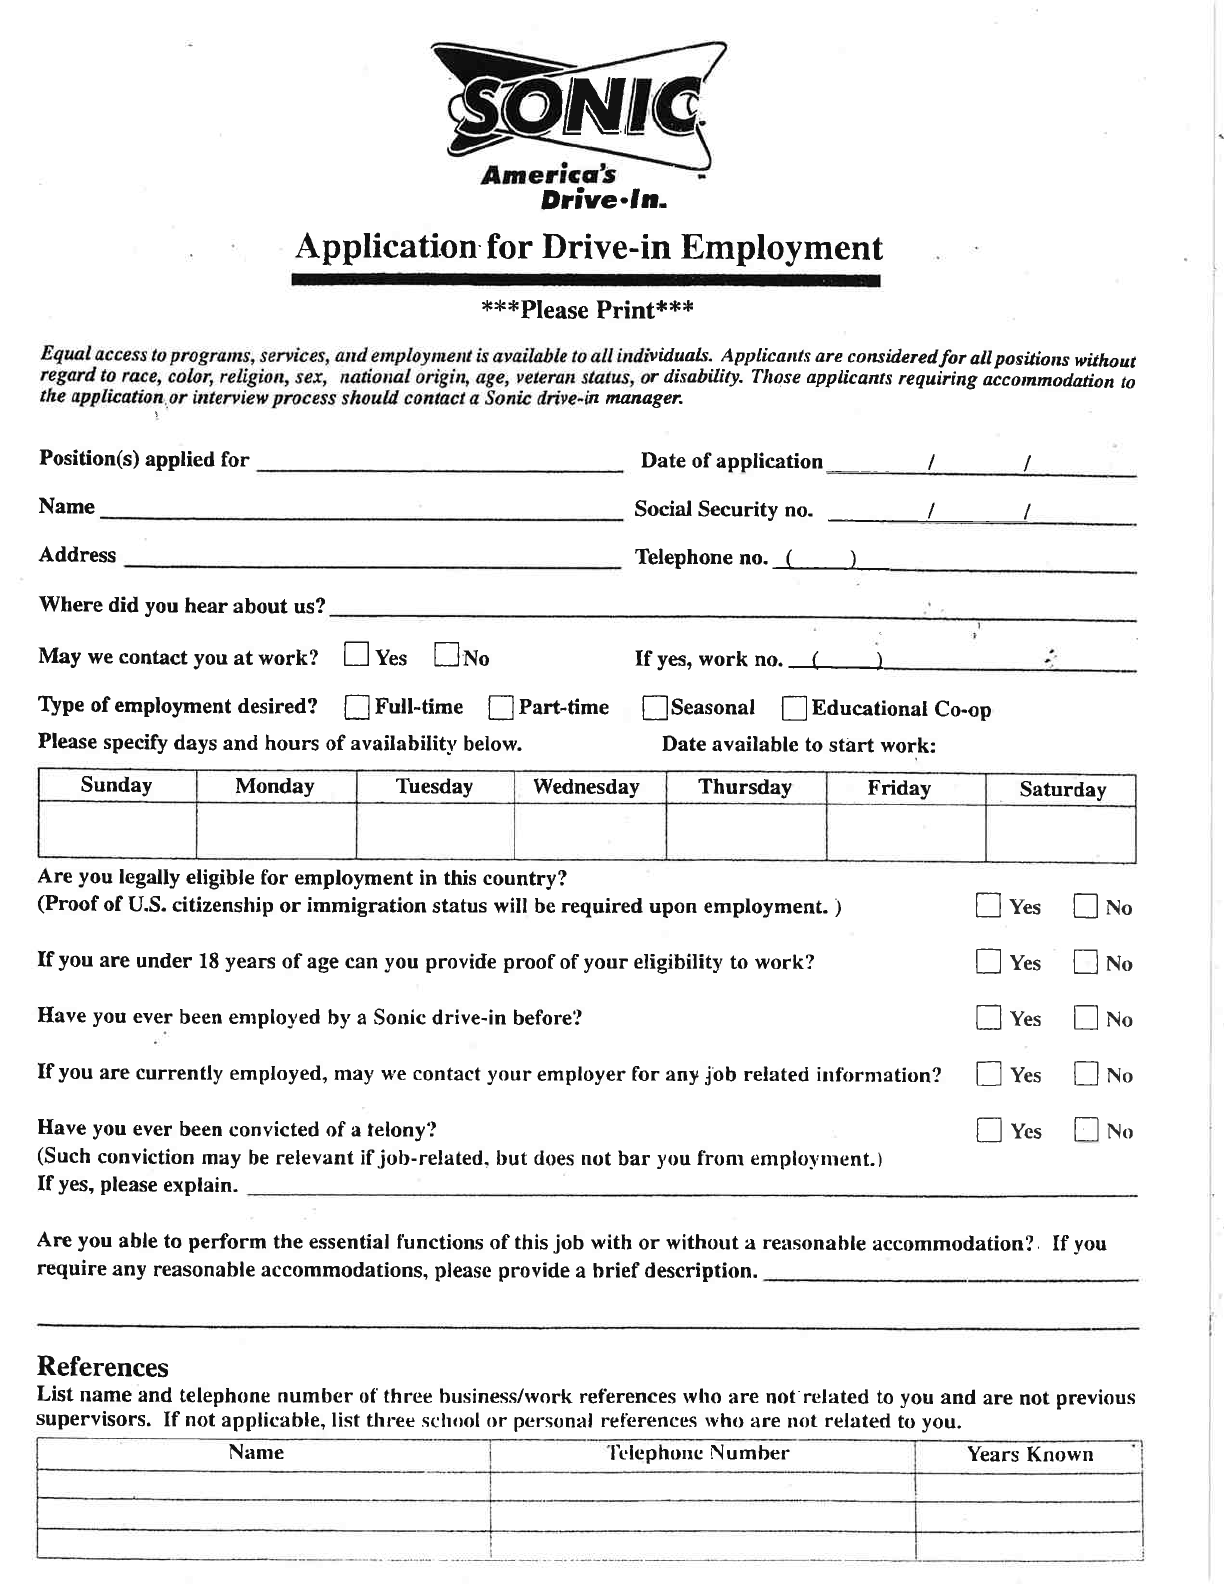 free printable sonic drive in job application form